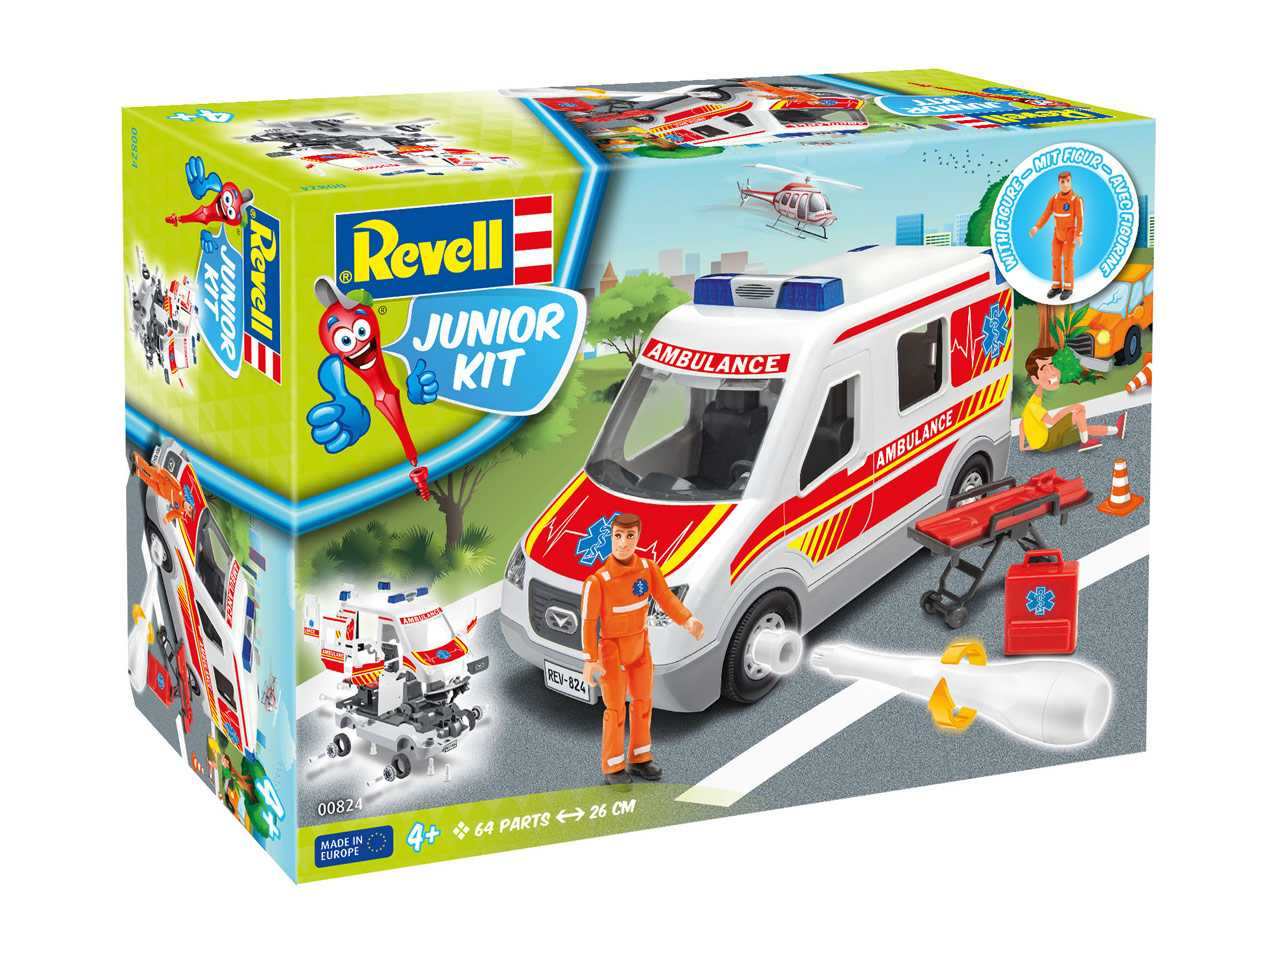 Auto Junior Kit sanitka s figurkou - Revell 00824